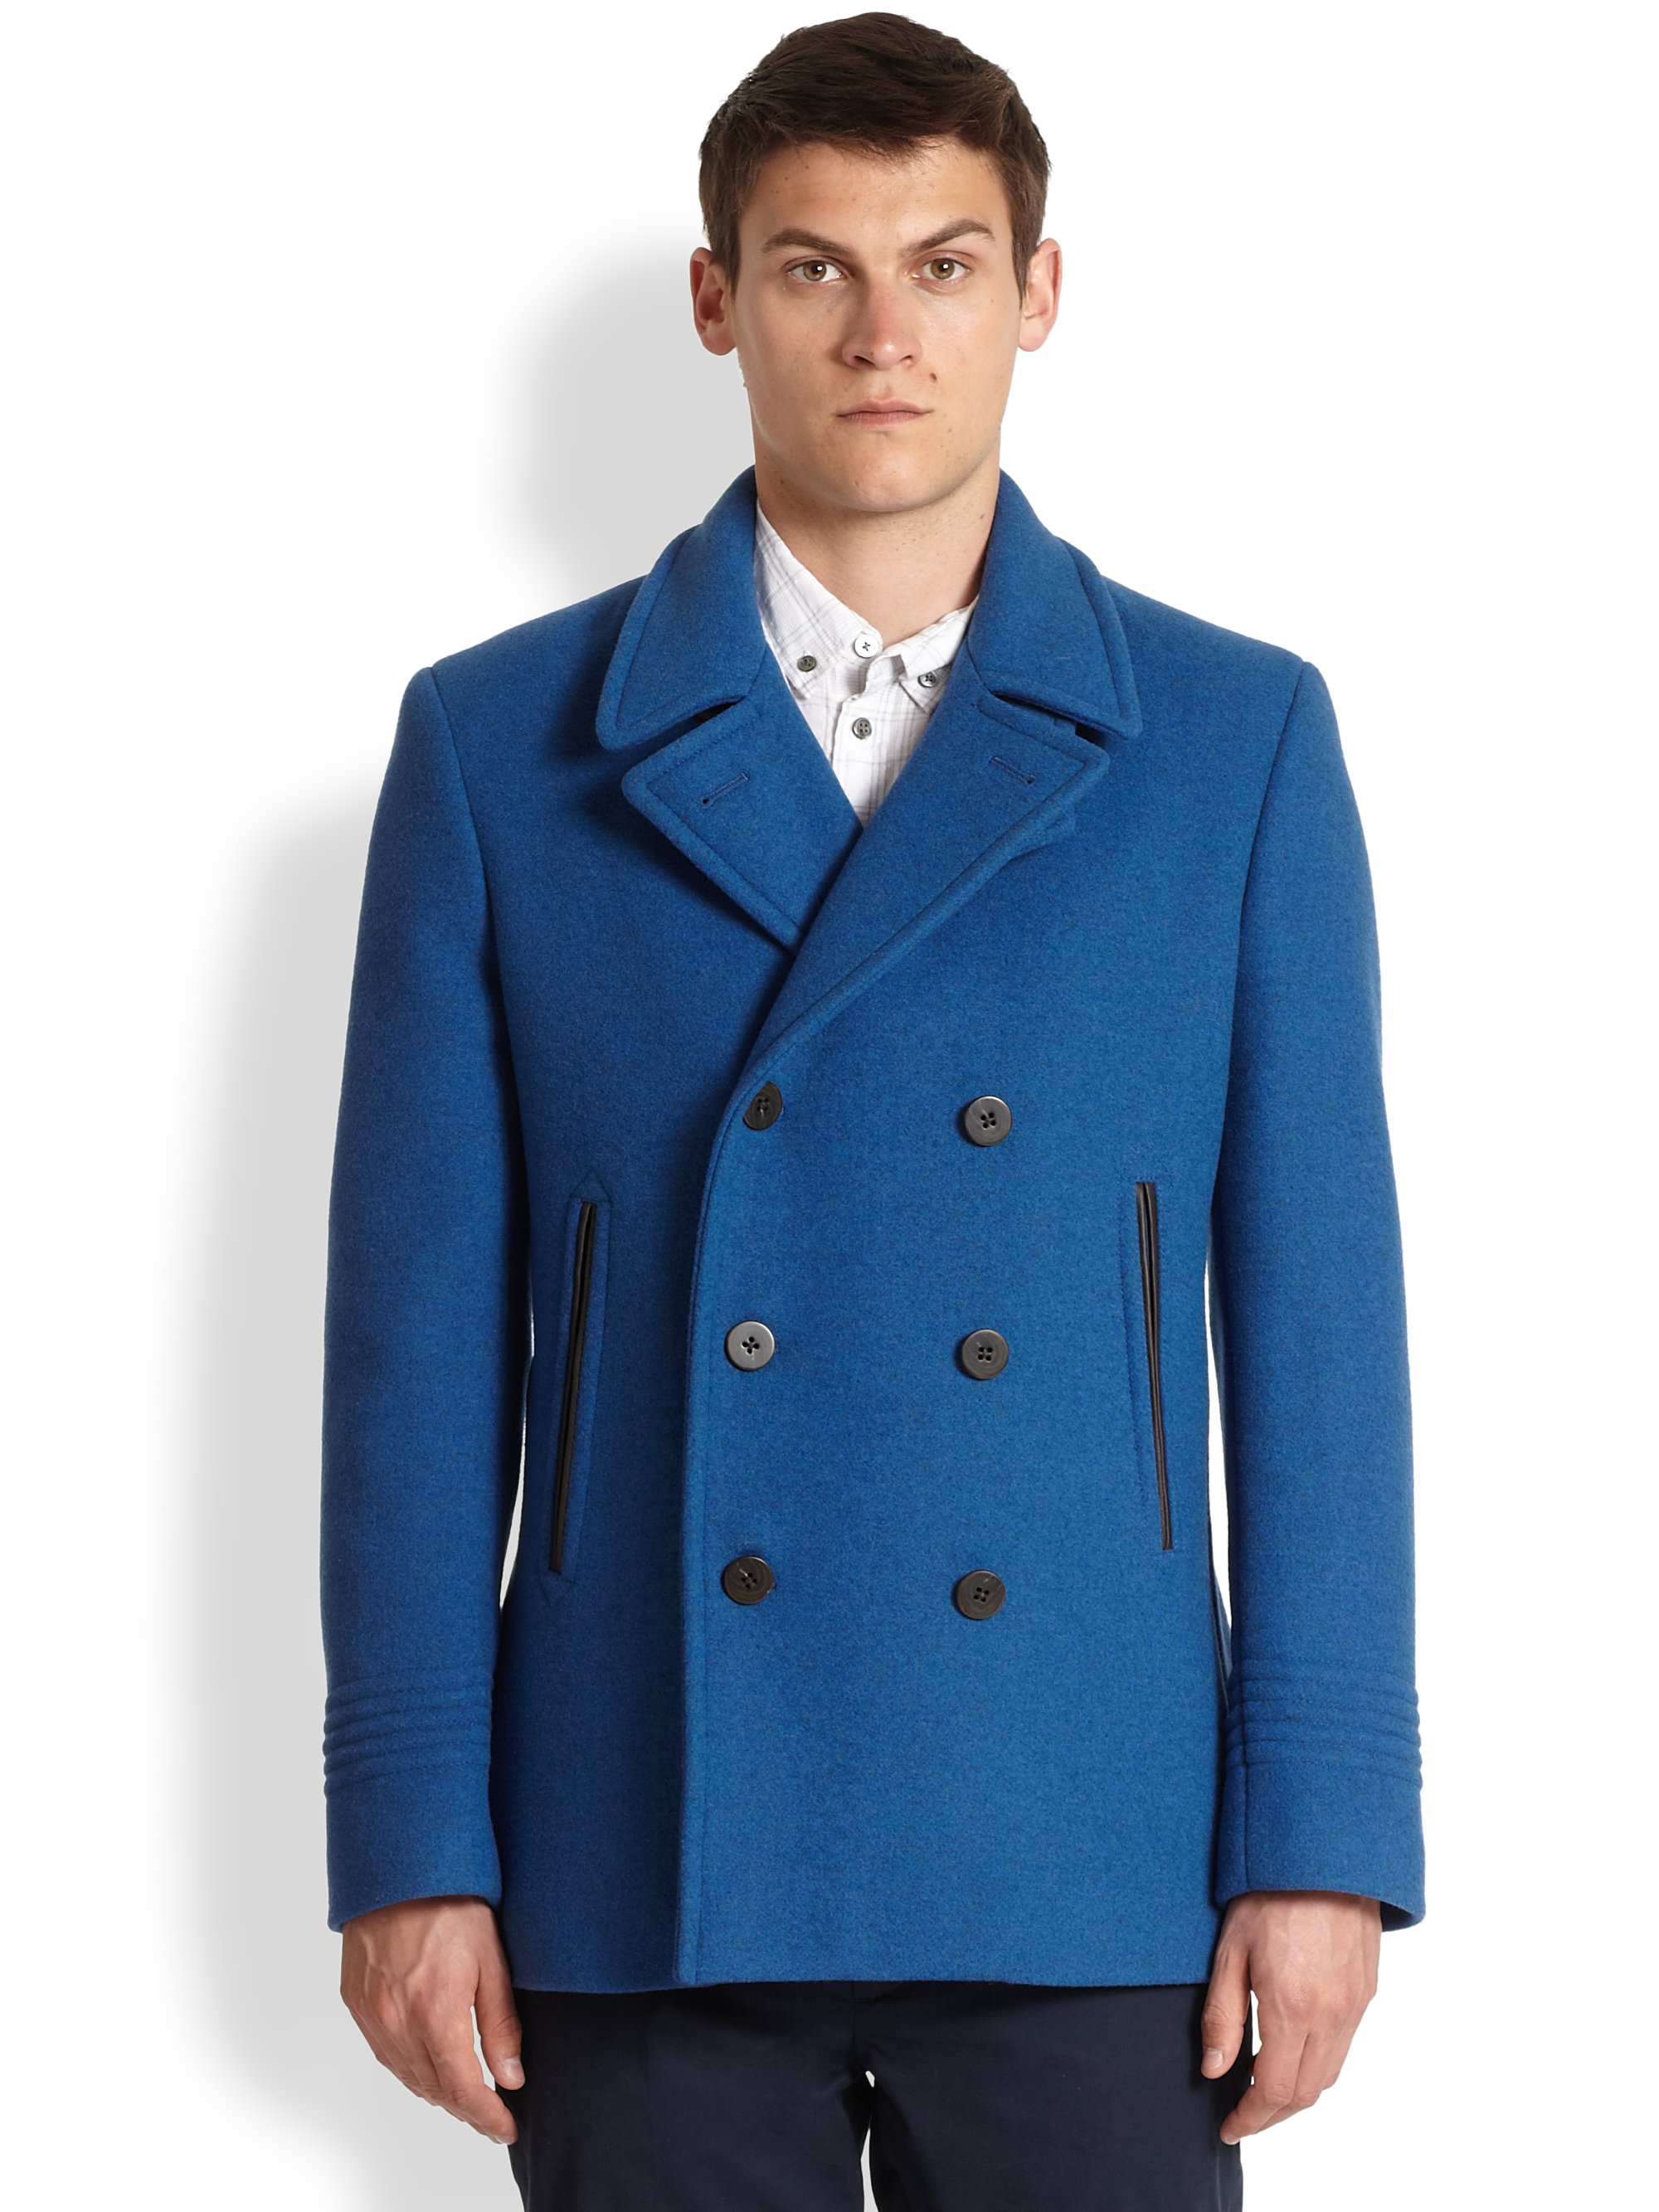 Marc by marc jacobs Rushmore Wool Peacoat in Blue for Men | Lyst